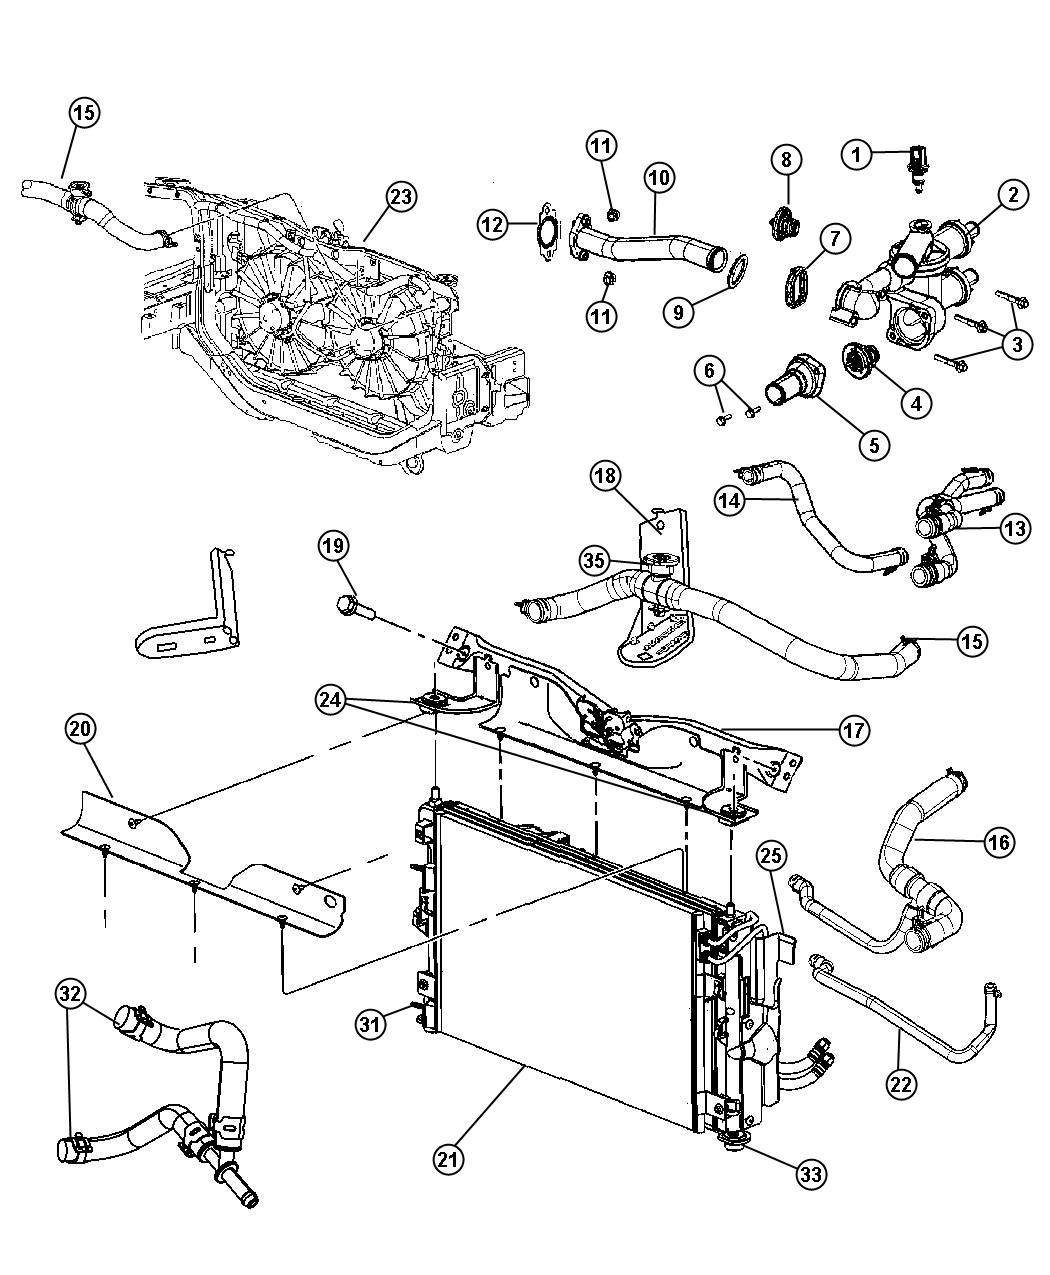 Jeep Wrangler Radiator Parts Diagram • Wiring Diagram For Free